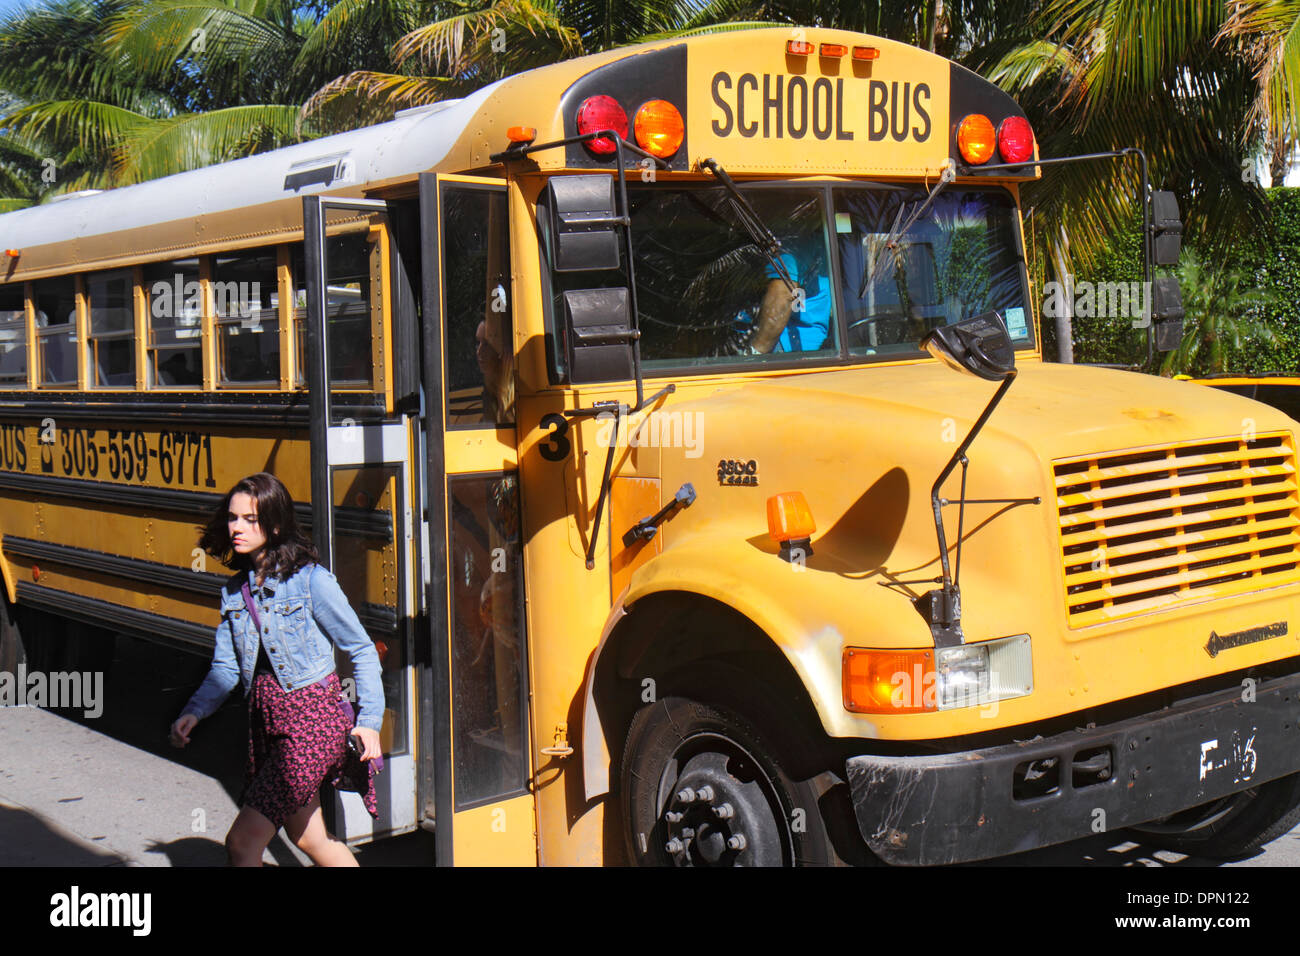 Kids Getting Off A School Bus